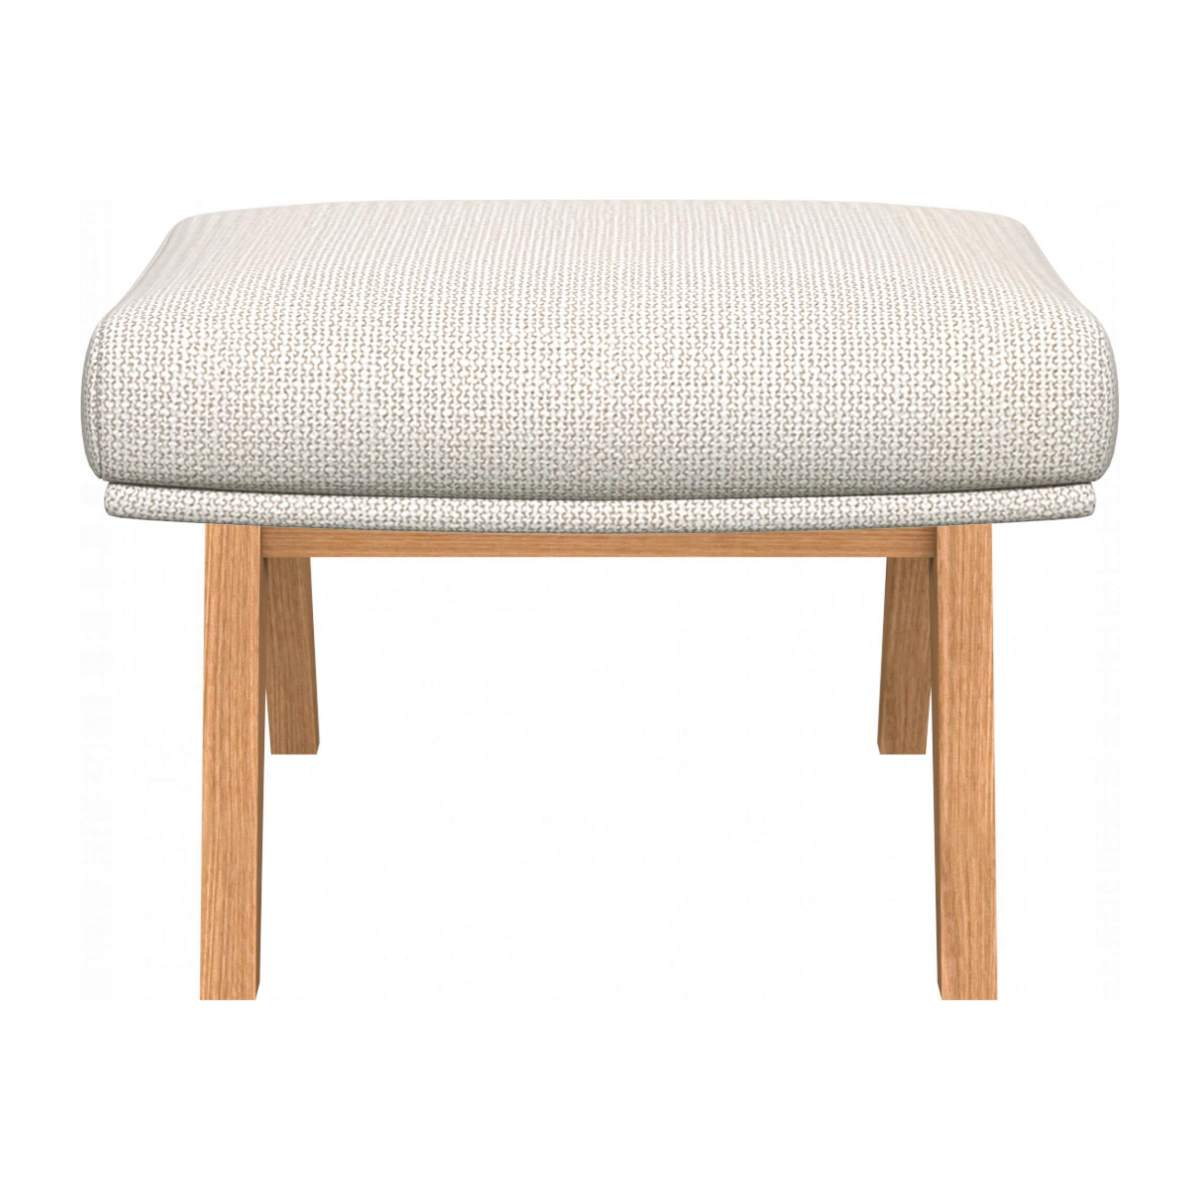 Footstool in Fasoli fabric, snow white with oak legs n°1